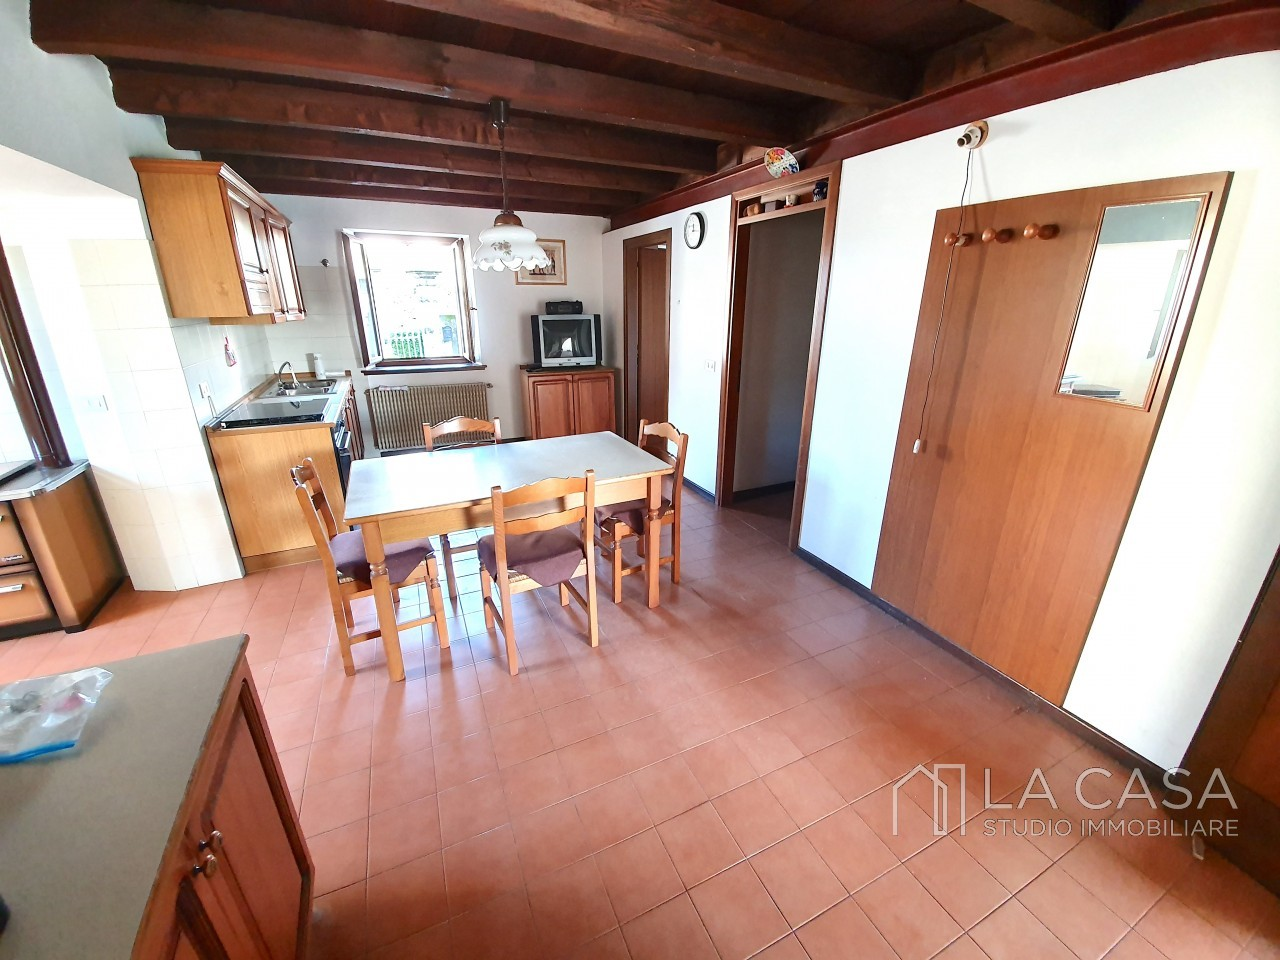 Casa indipendente in Linea - Rif.C6 https://images.gestionaleimmobiliare.it/foto/annunci/191125/2114313/1280x1280/006__20191125_115547_wmk_1.jpg